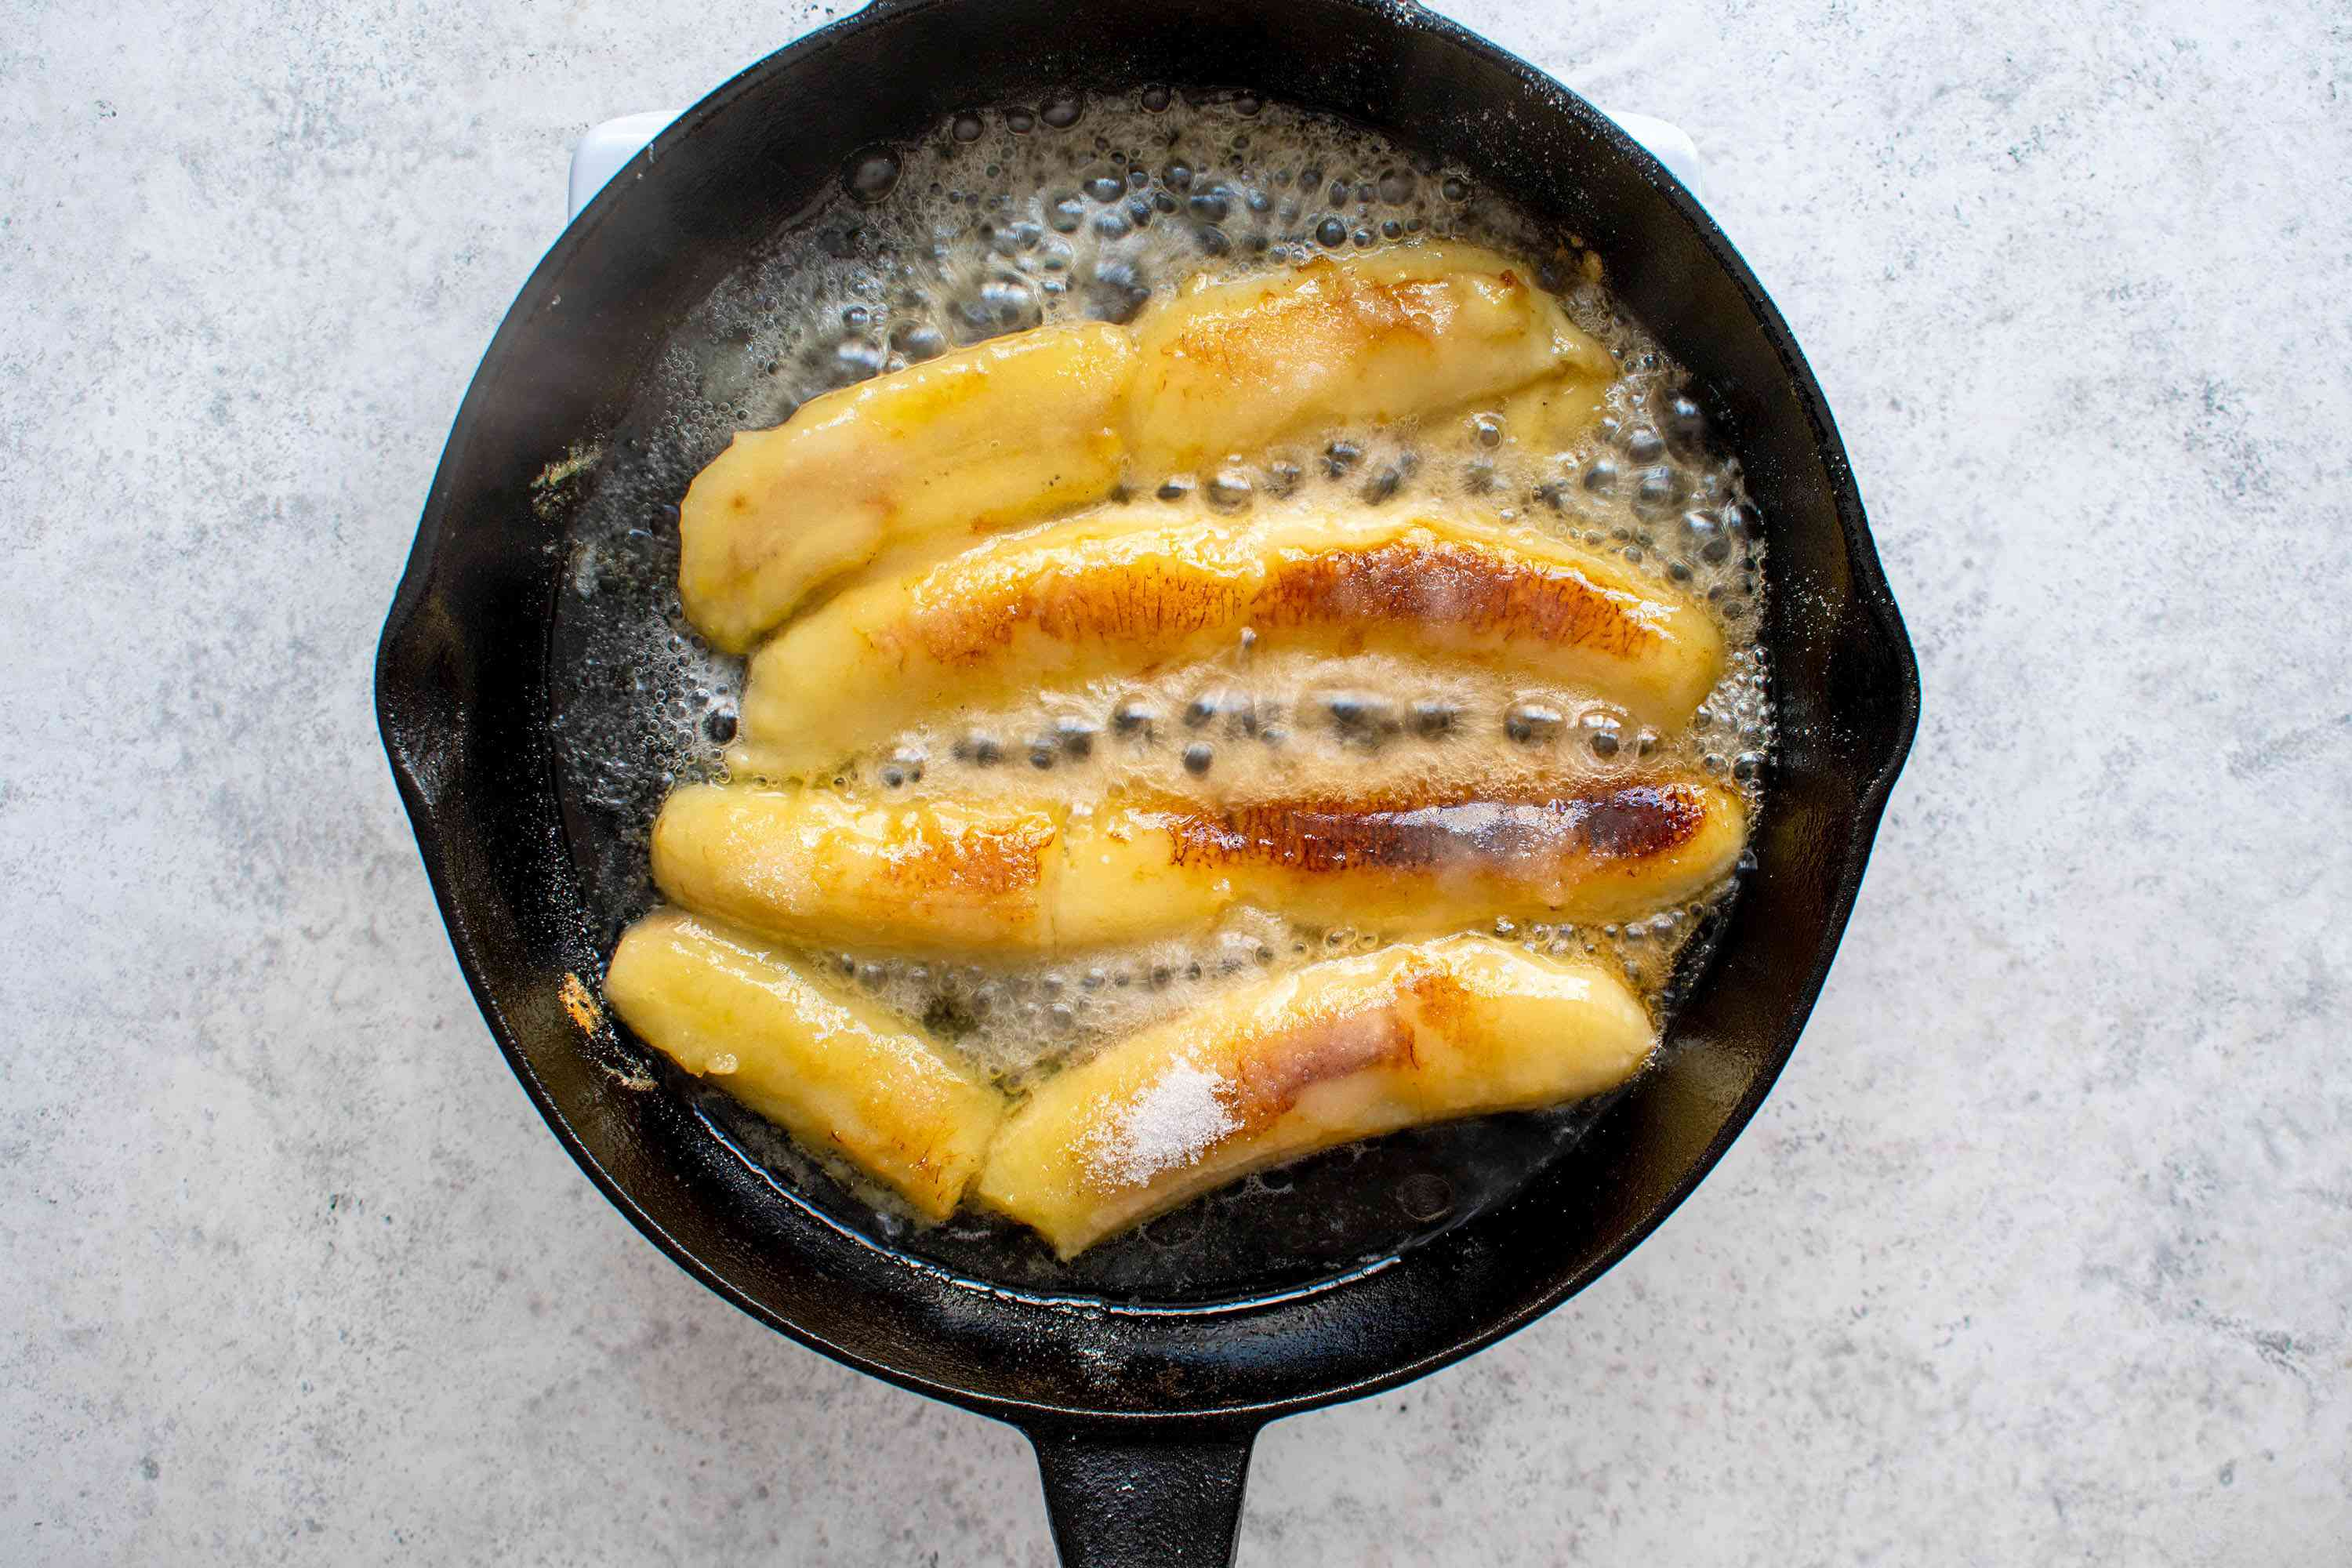 Add the sugar and rum to the bananas in the frying pan